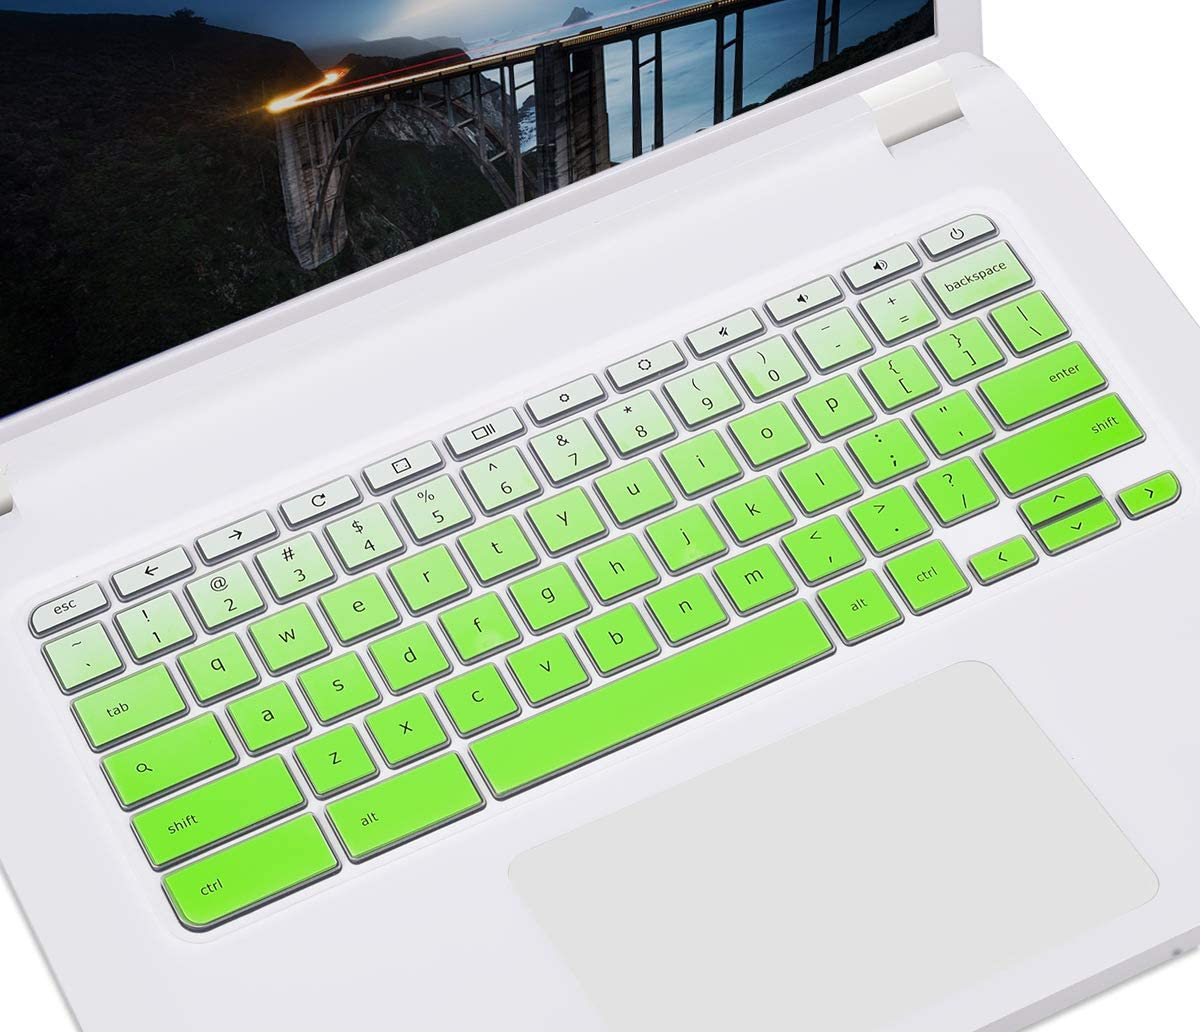 """Acer R11 Keyboard Skin Cover for Acer Premium R11 11.6"""" / Acer Chromebook 11 CB3-131 CB3-132 / Chromebook R 11 CB5-132T / 13.3"""" Chromebook R 13 CB5-312T/ Chromebook 14 CB3-431 CP5-471, Gradual Green"""